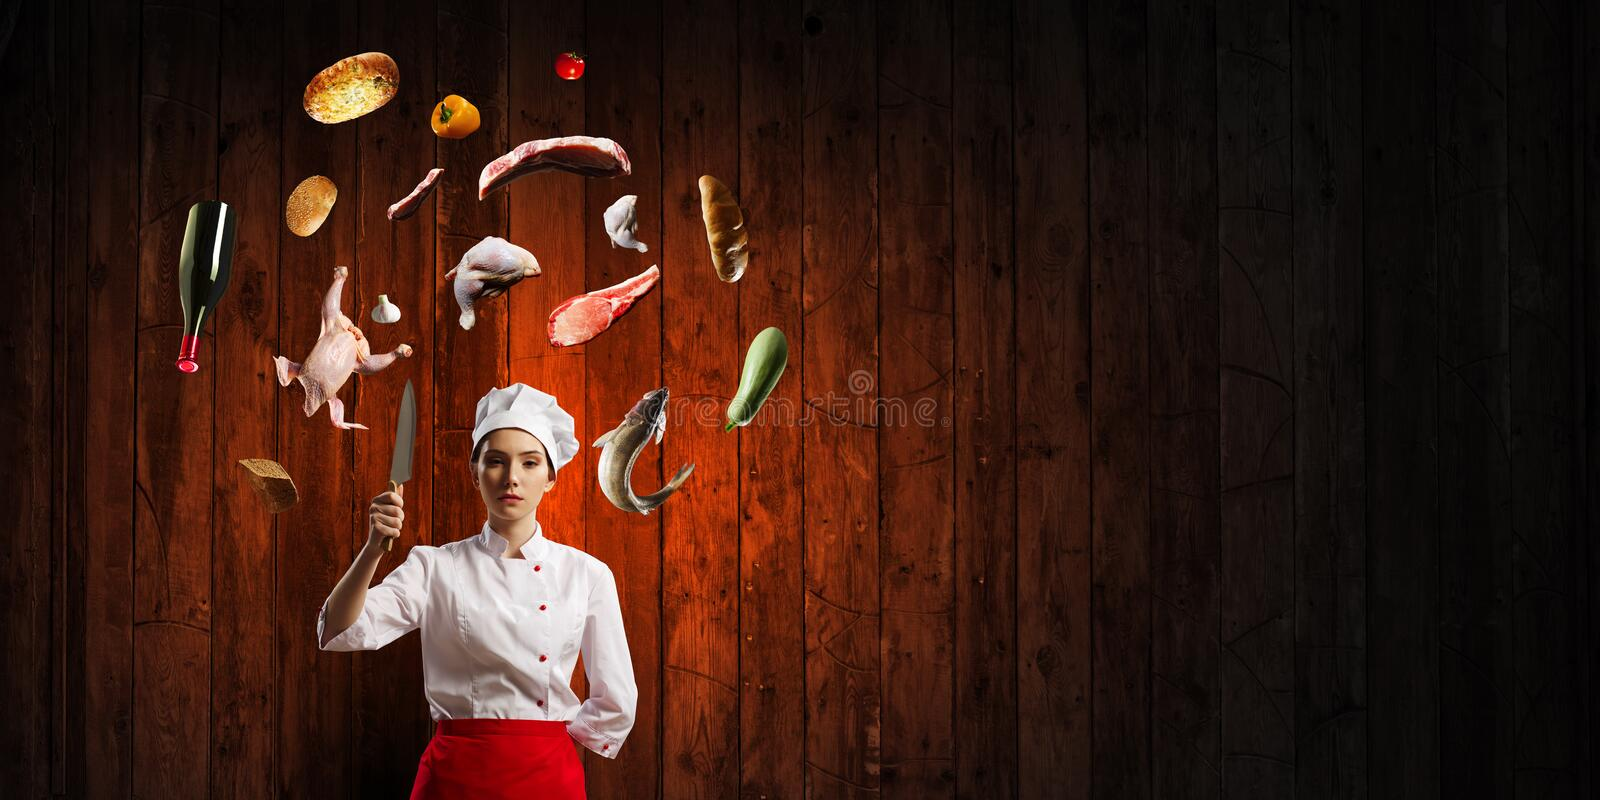 He is crazy about cooking. Mixed media stock photos